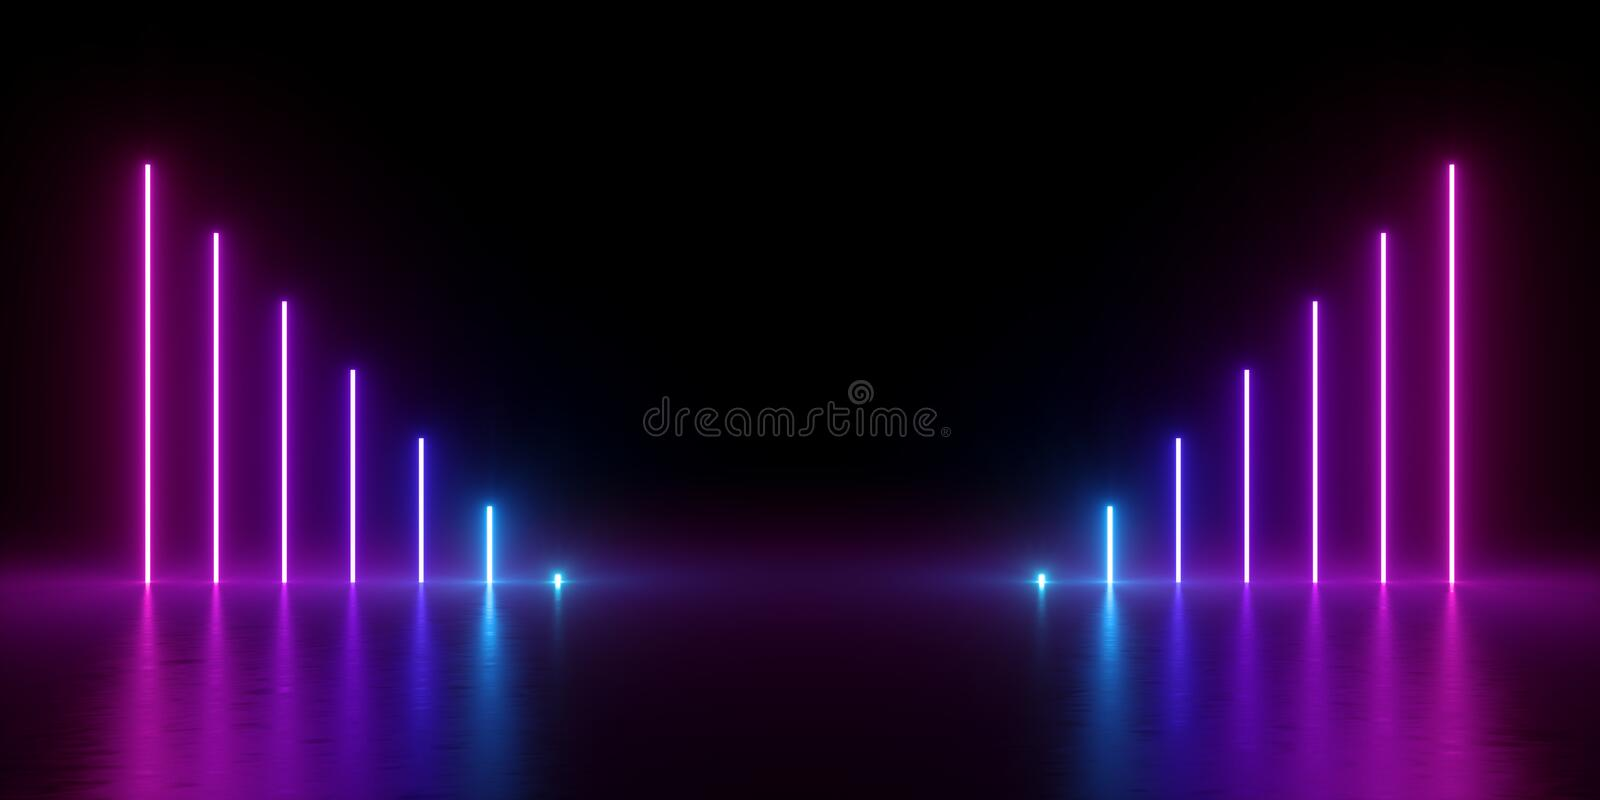 3d render, abstract minimal background, glowing vertical lines, chart, electric blue, neon lights, ultraviolet spectrum, virtual royalty free illustration